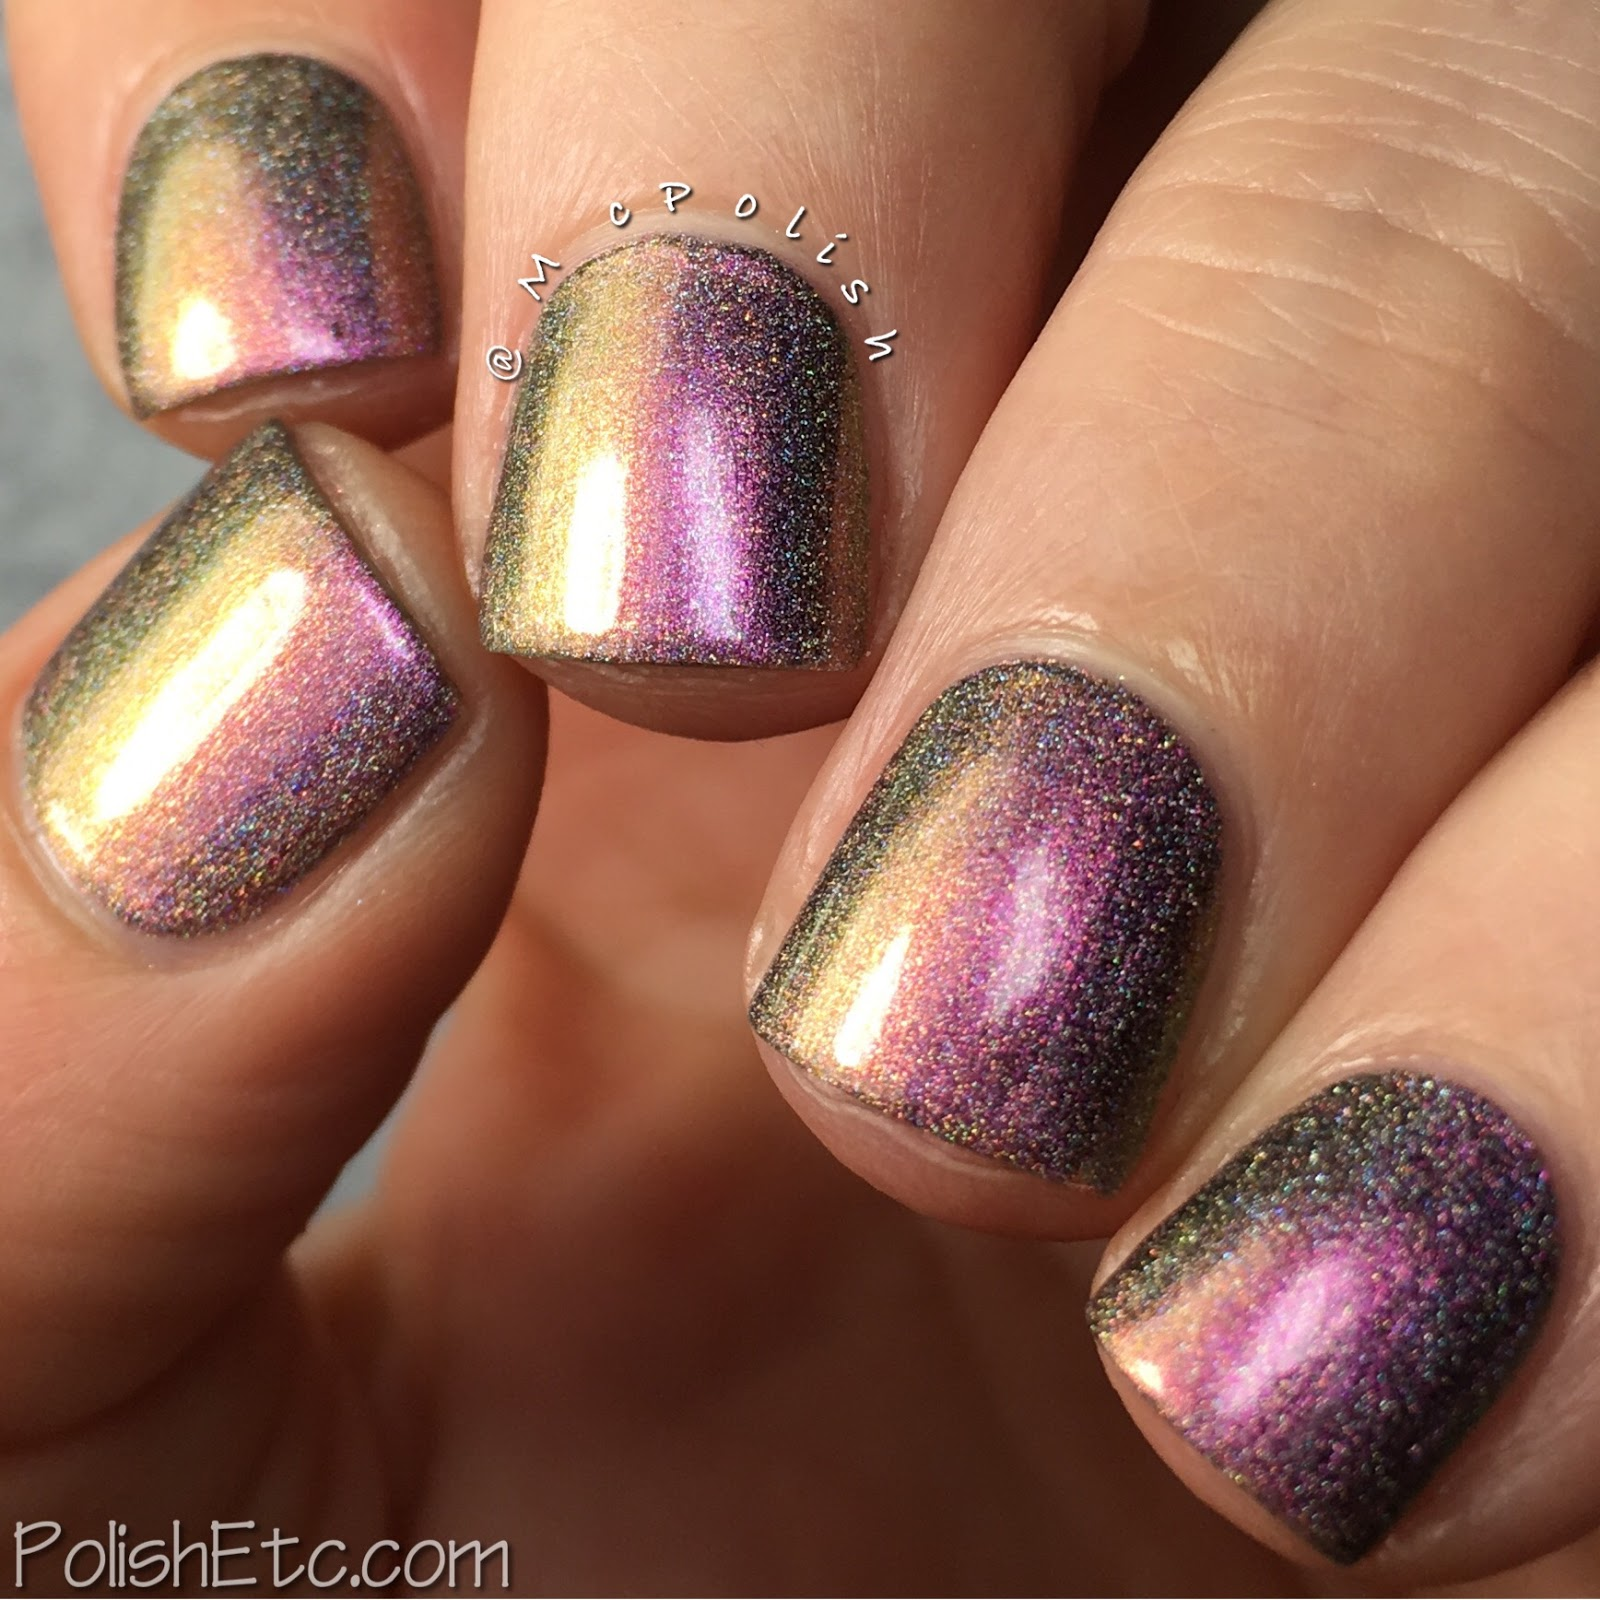 Great Lakes Lacquer - Polishing Poetic Collection - McPolish - The Centre Cannot Hold